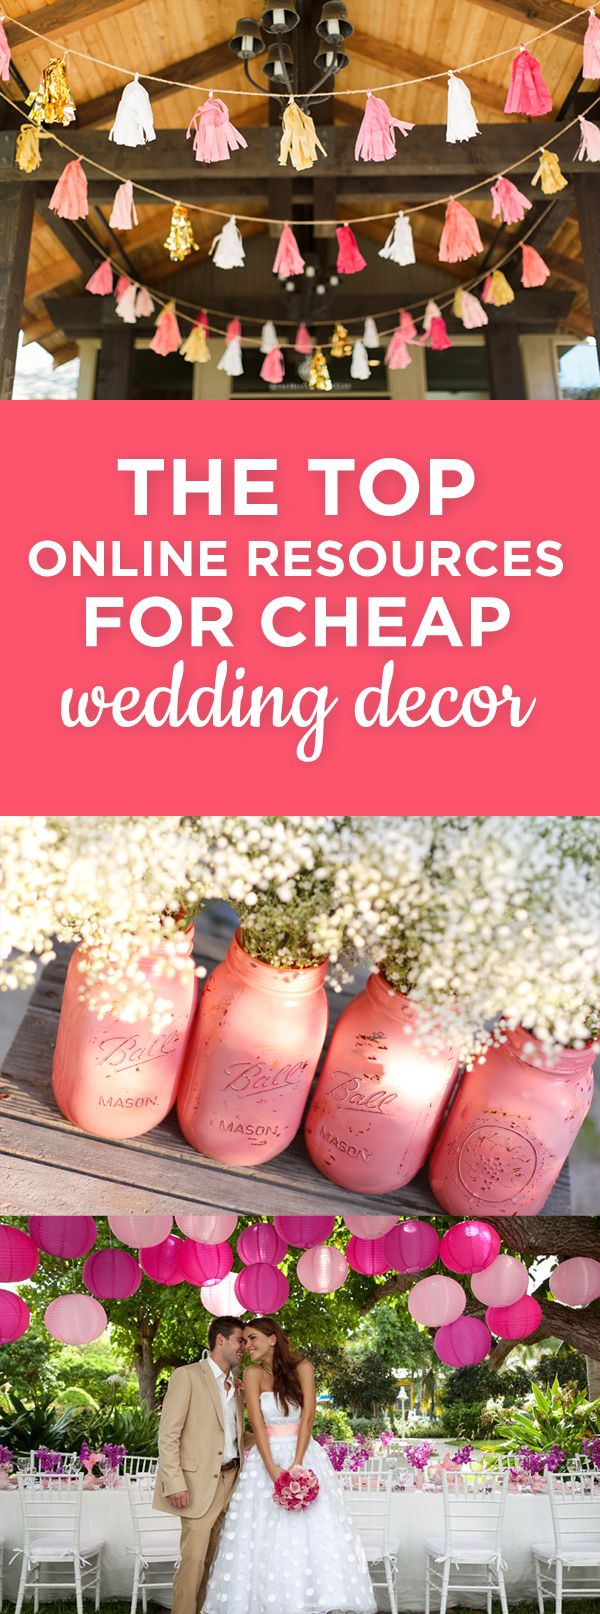 The Top Online Resources for Cheap Wedding Decor | The Budget Savvy Bride